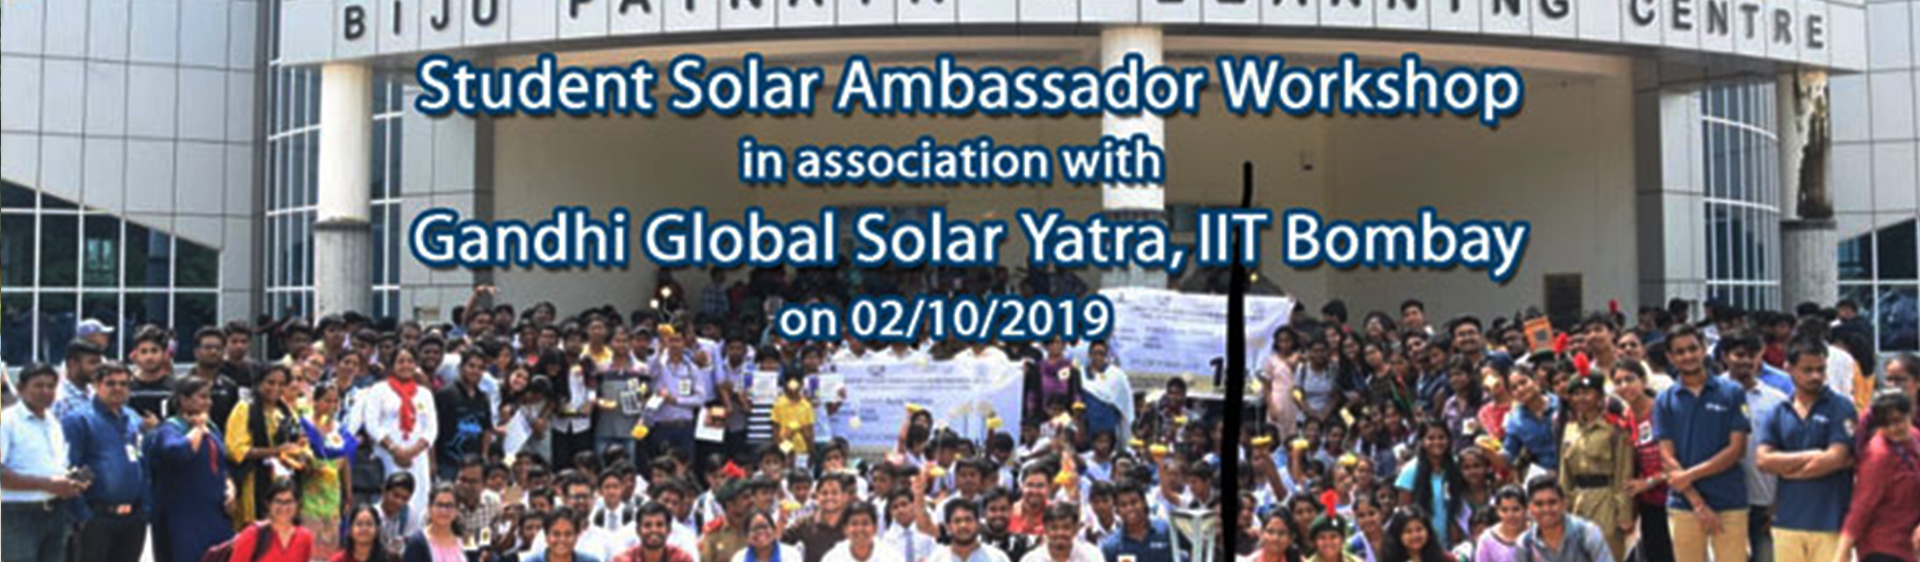 Partner Institute for organised Student Solar Ambassador Workshop in association with Gandhi Global Solar Yatra , IIT Bombay